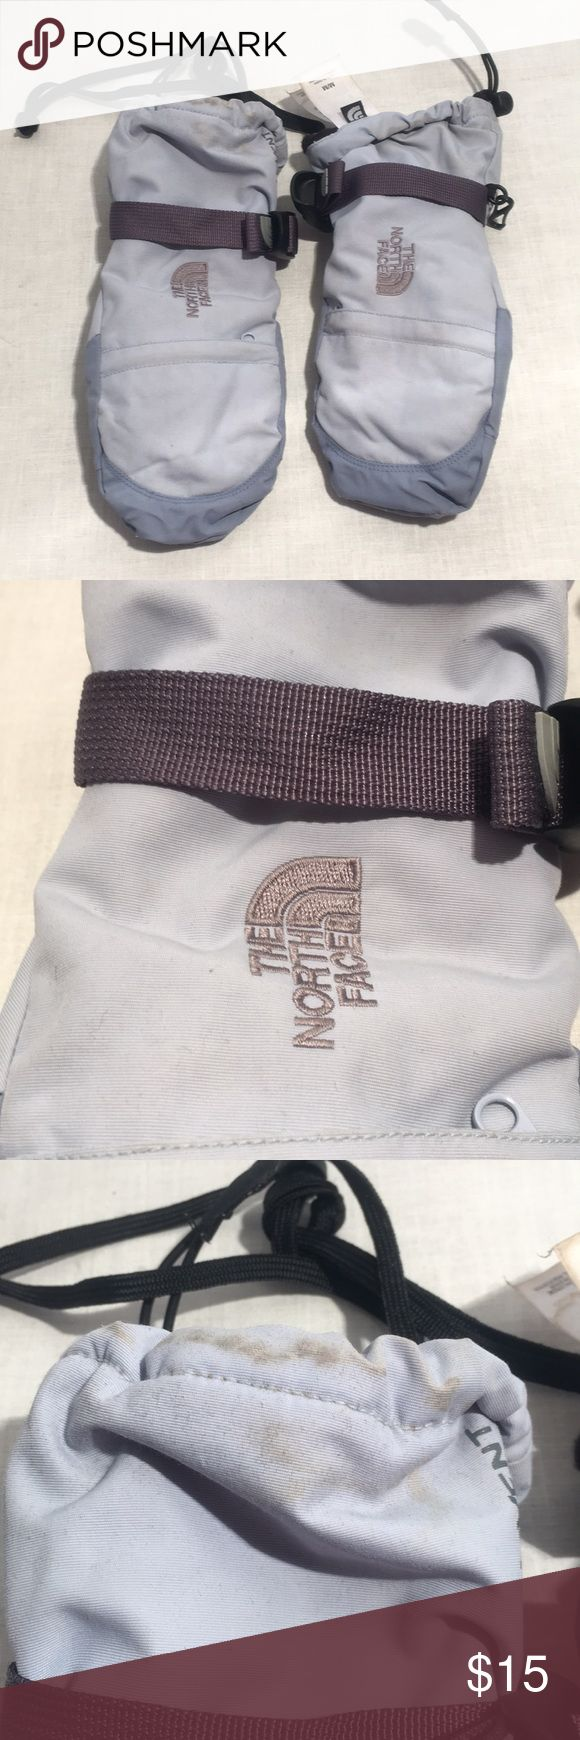 """Kids The North Face Mittens Sz M Preowned no rips and no holes. The North Face light blue mittens. View all pictures carefully stains at the cuffs. Each mitten has a zipper pouch. 6"""" from fingers tip of mitt to gathered elastic area. Please do not leave offer with comments. Thanks The North Face Accessories Mittens"""